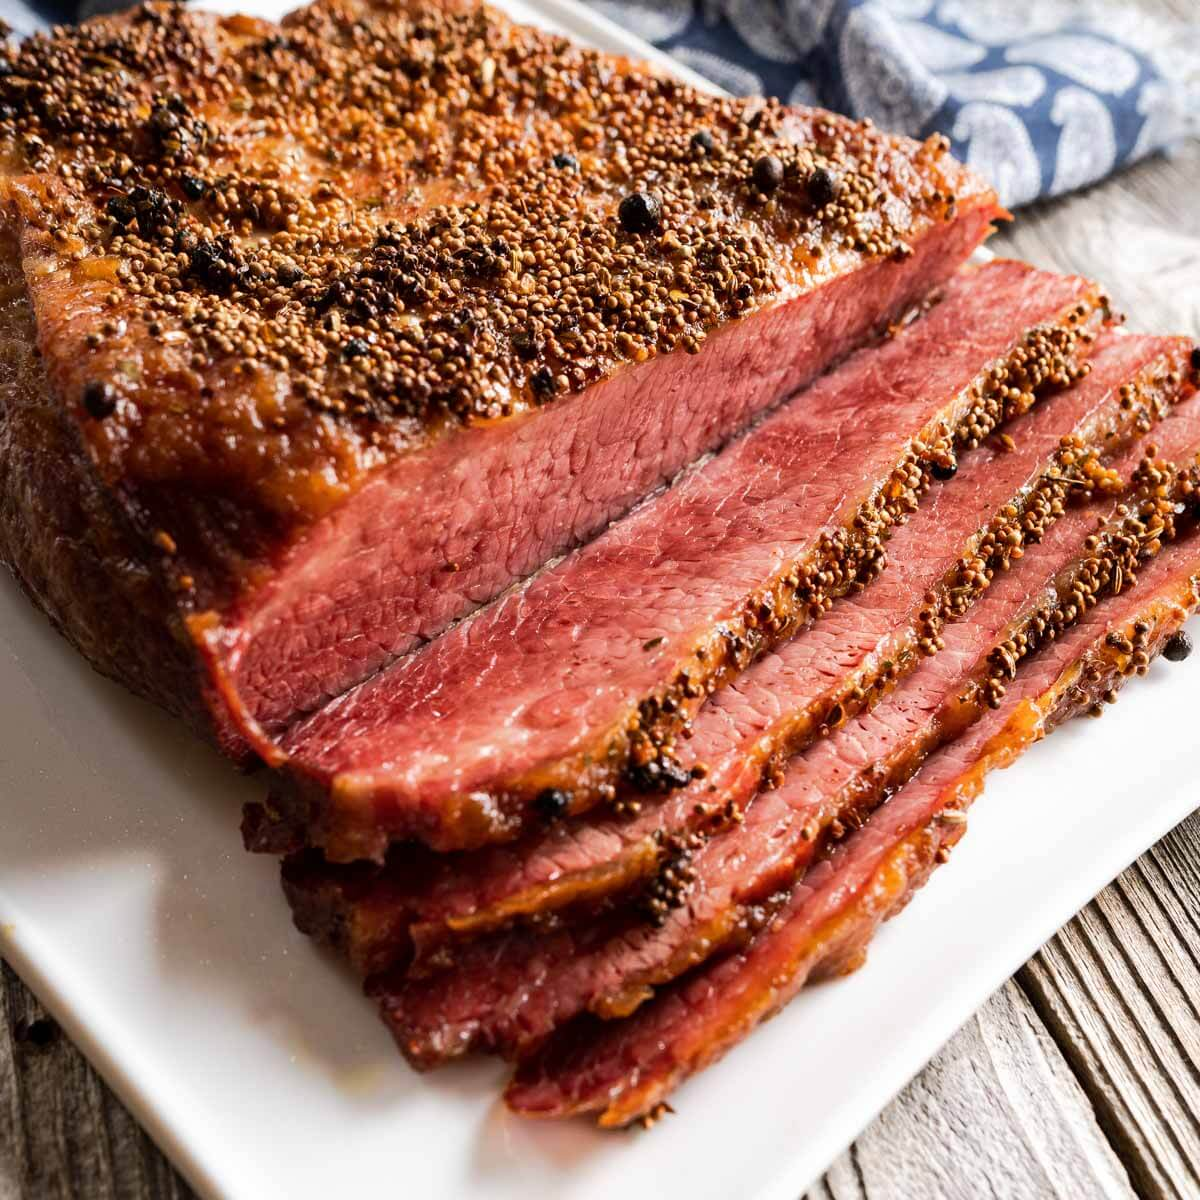 How to Bake a Corned Beef Brisket